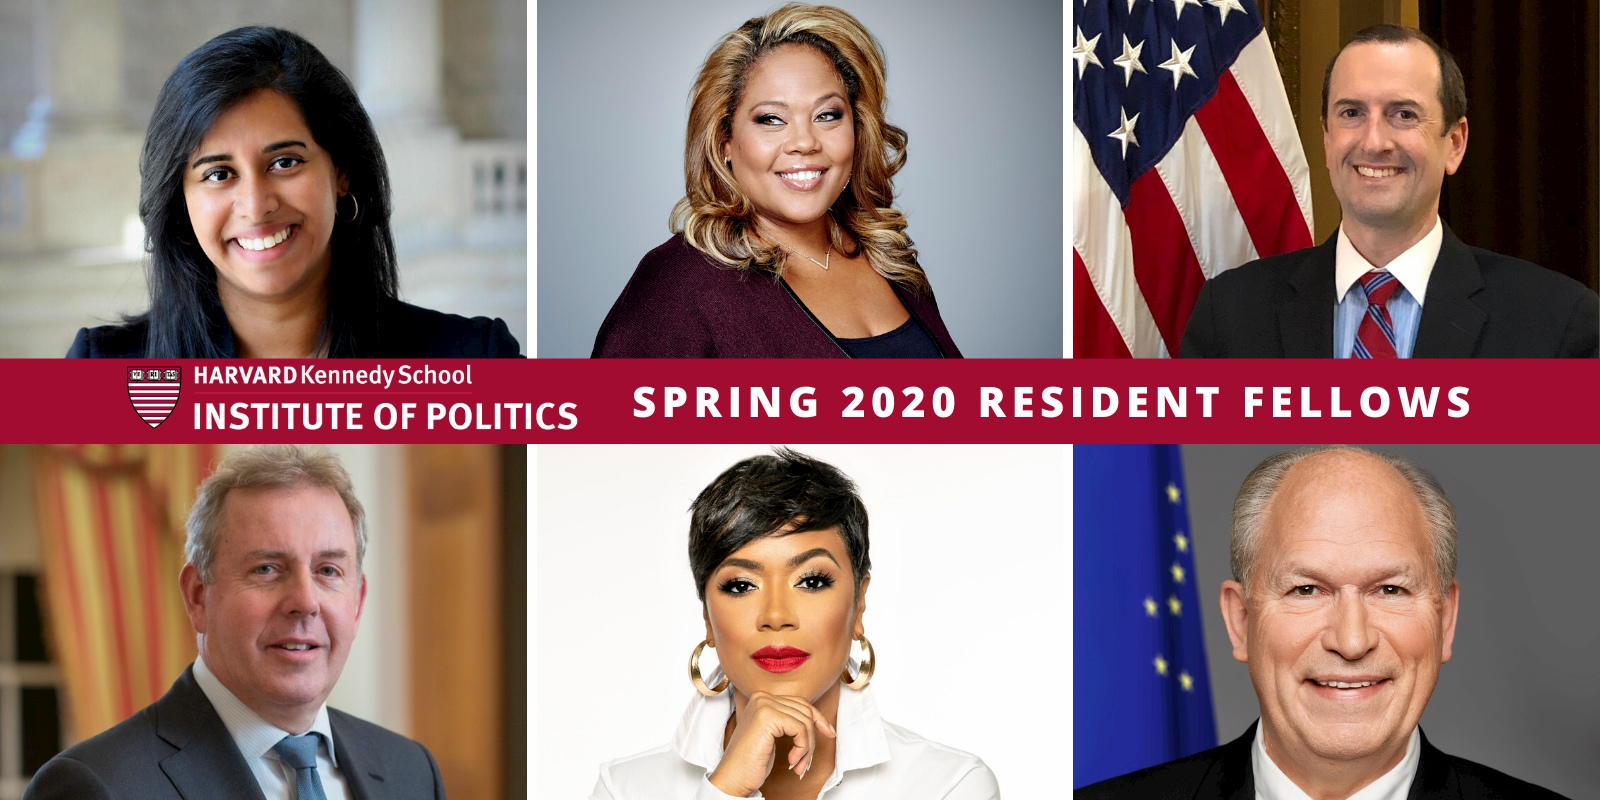 IOP Spring 2020 Resident Fellows